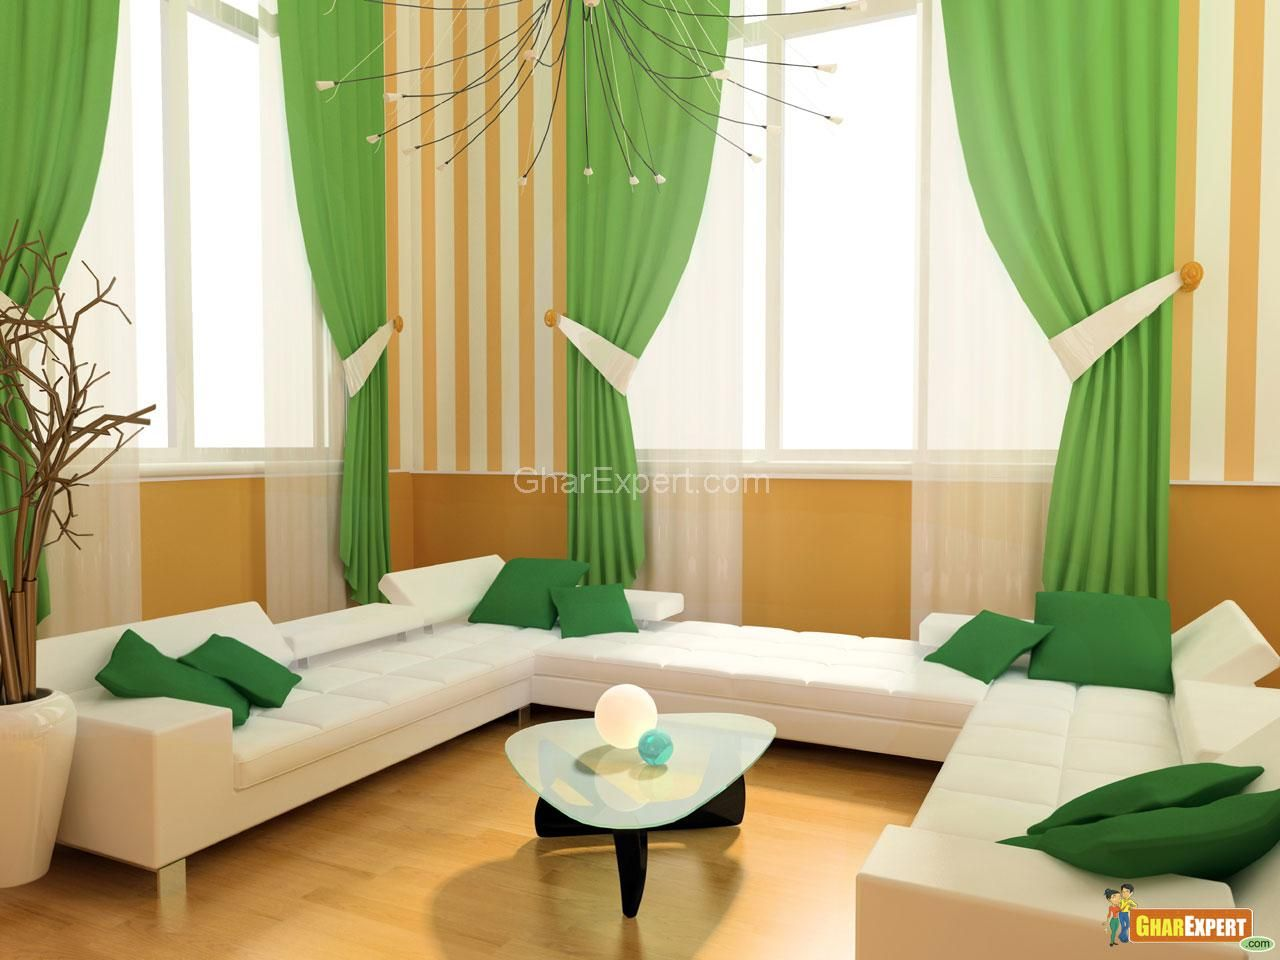 Curtain Designs For Living Room Glamorous Greencurtaindesignsforlivingroomwindow  Curtains For Living Inspiration Design